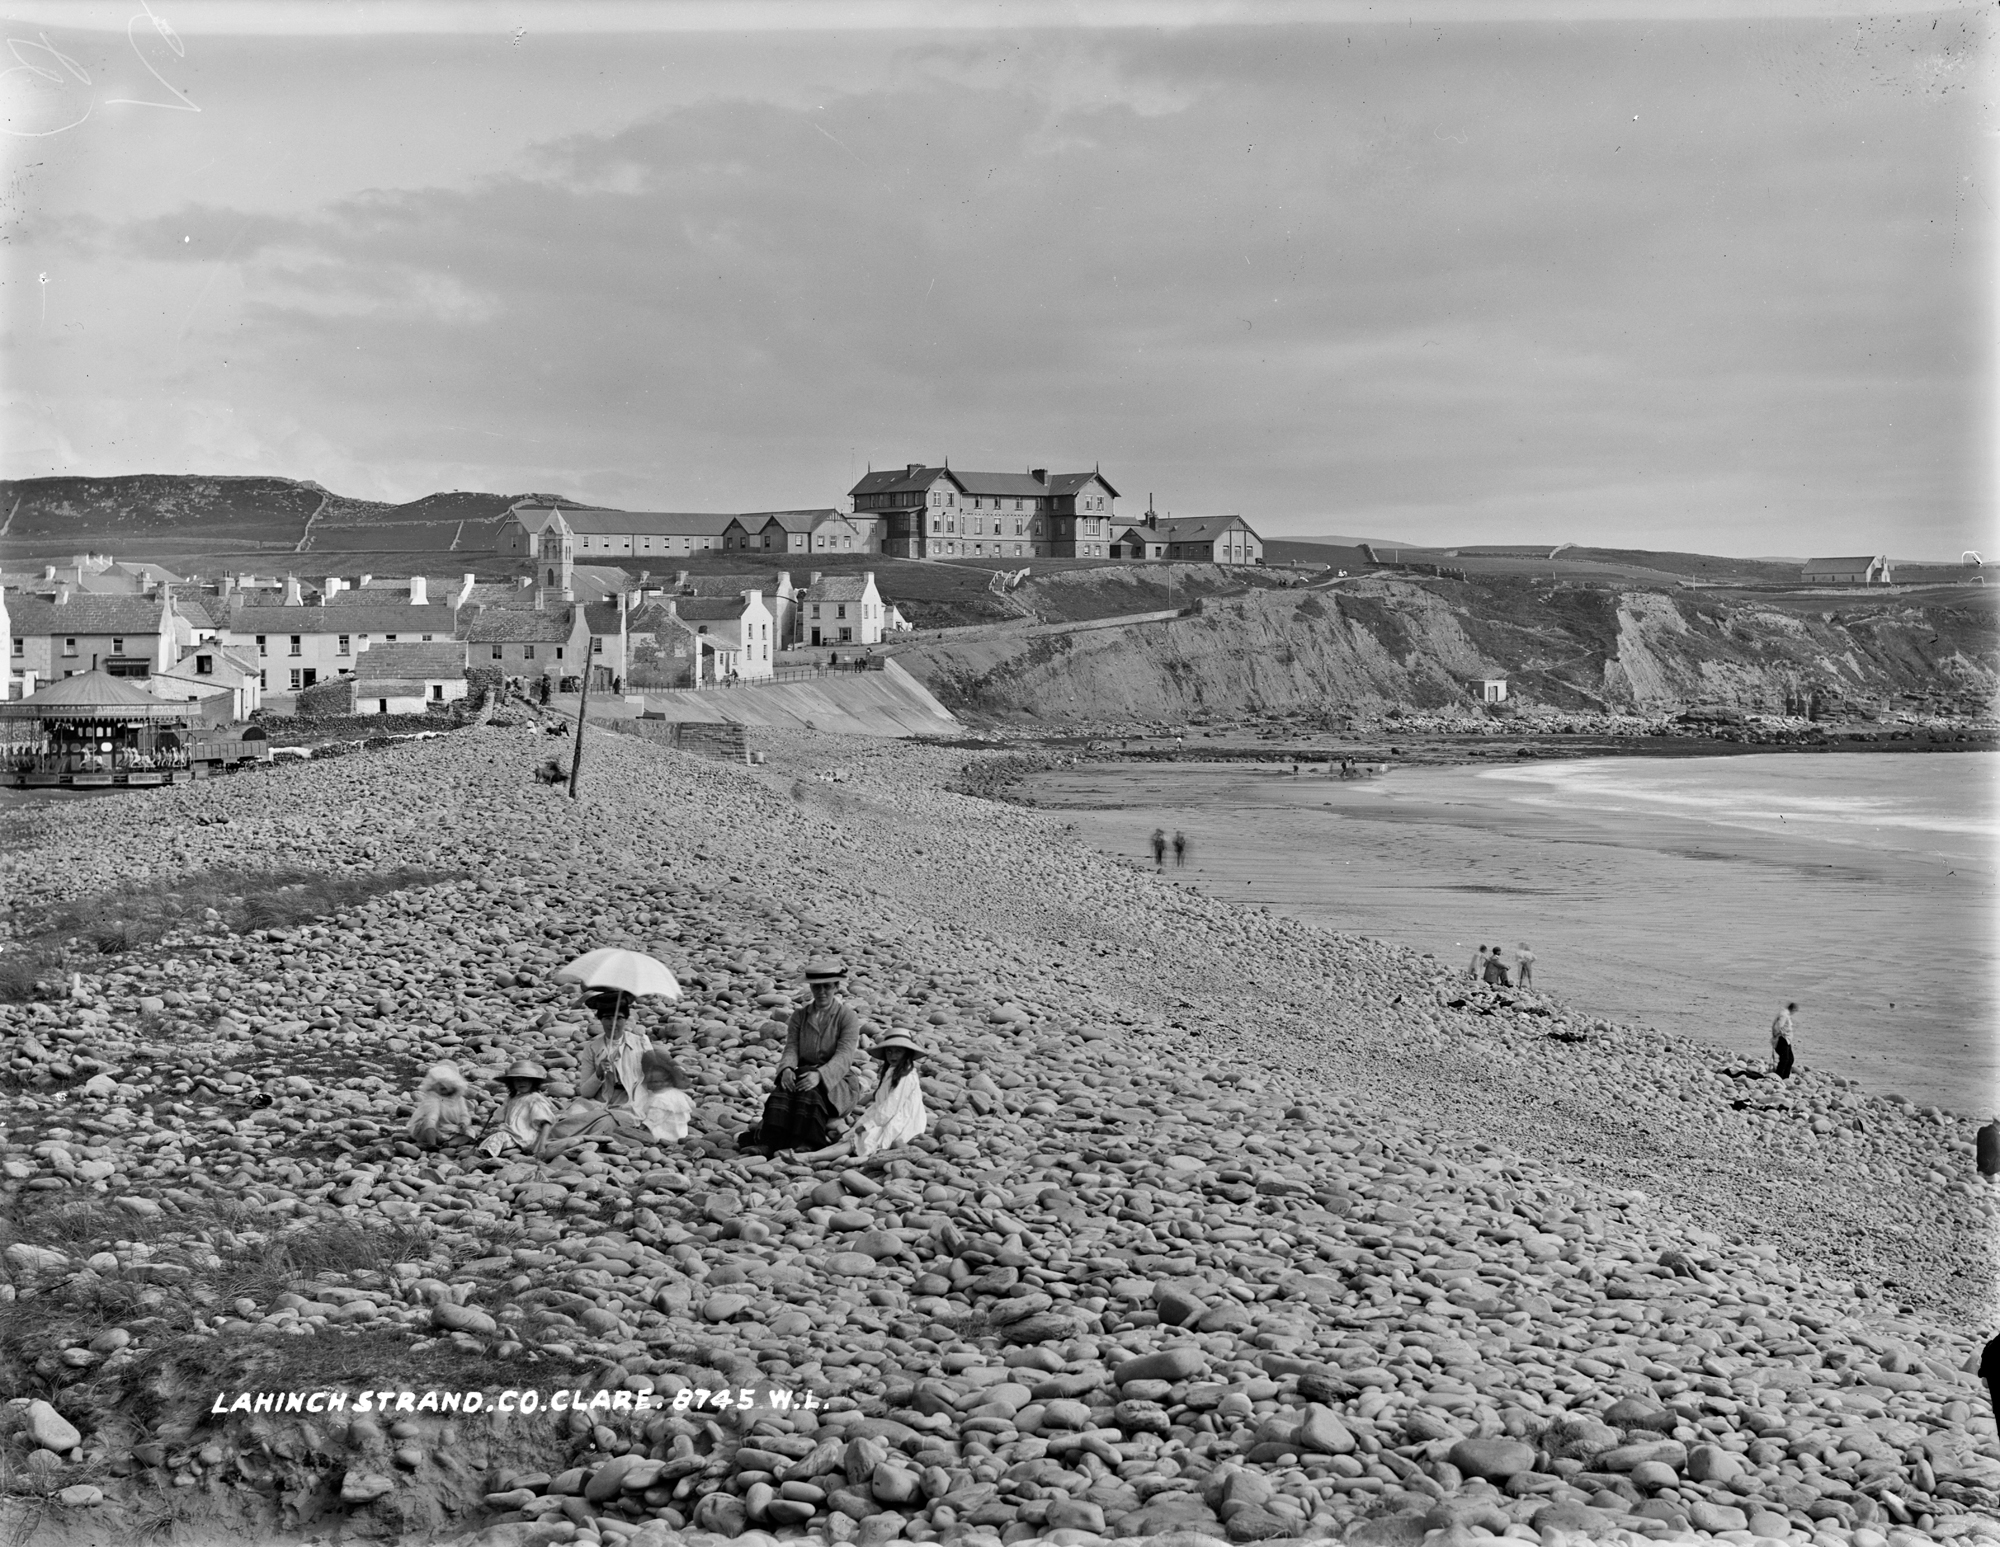 Strand, Lahinch, Co. Clare